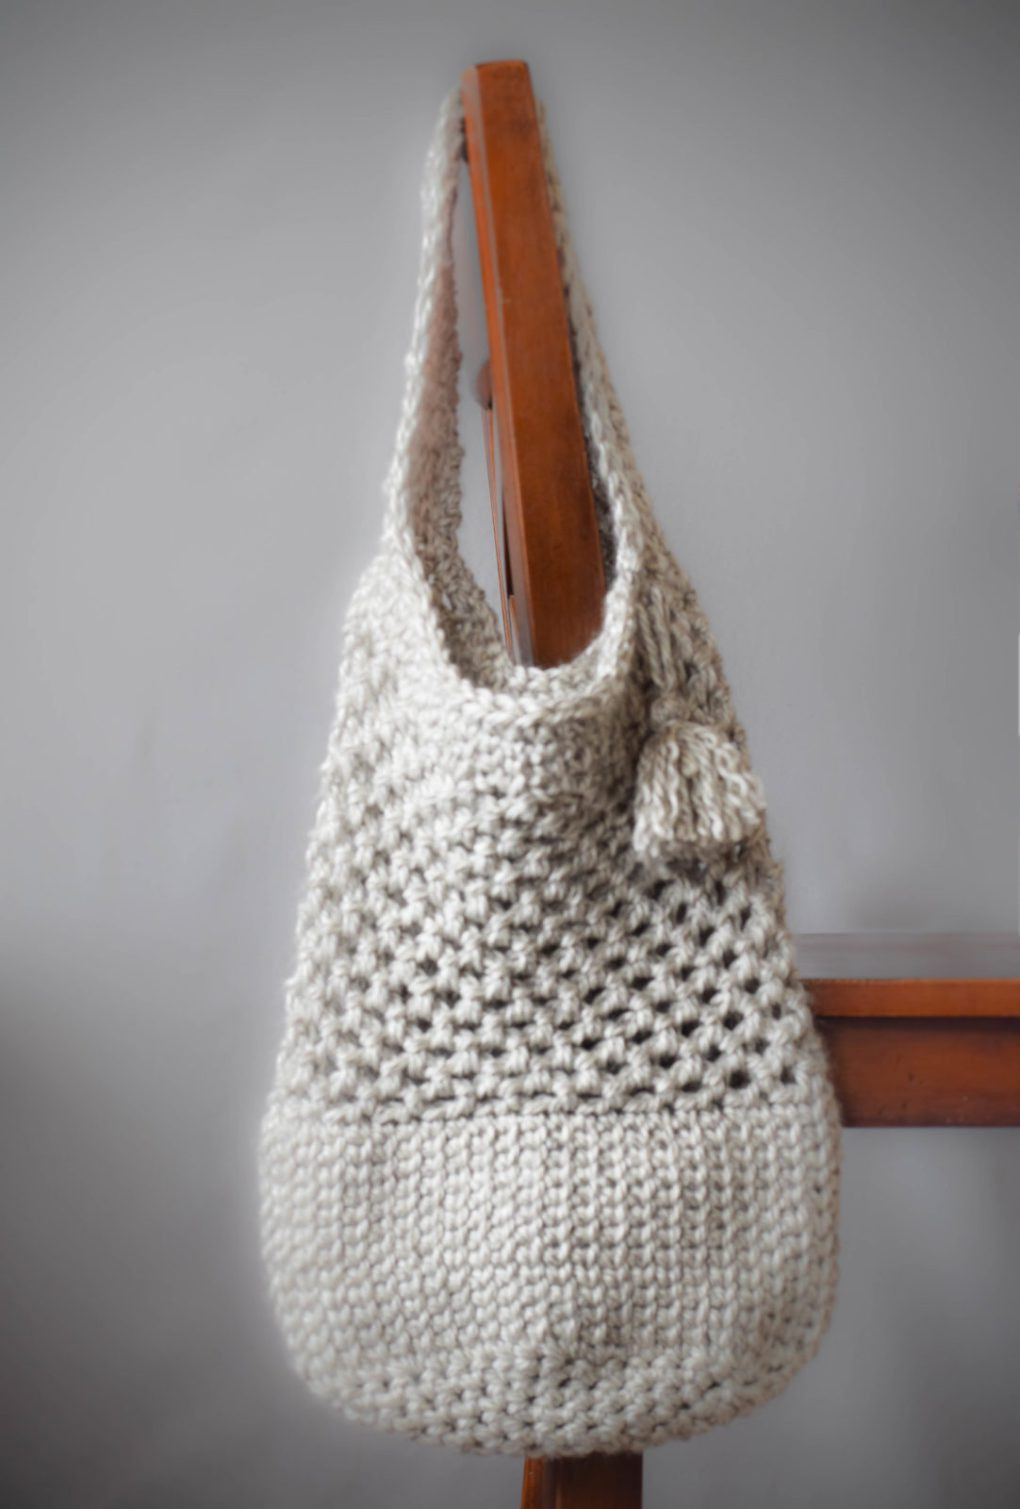 Crochet Patterns for Bags Inspirational Manhattan Market tote – Crochet Pattern Of Incredible 40 Pics Crochet Patterns for Bags